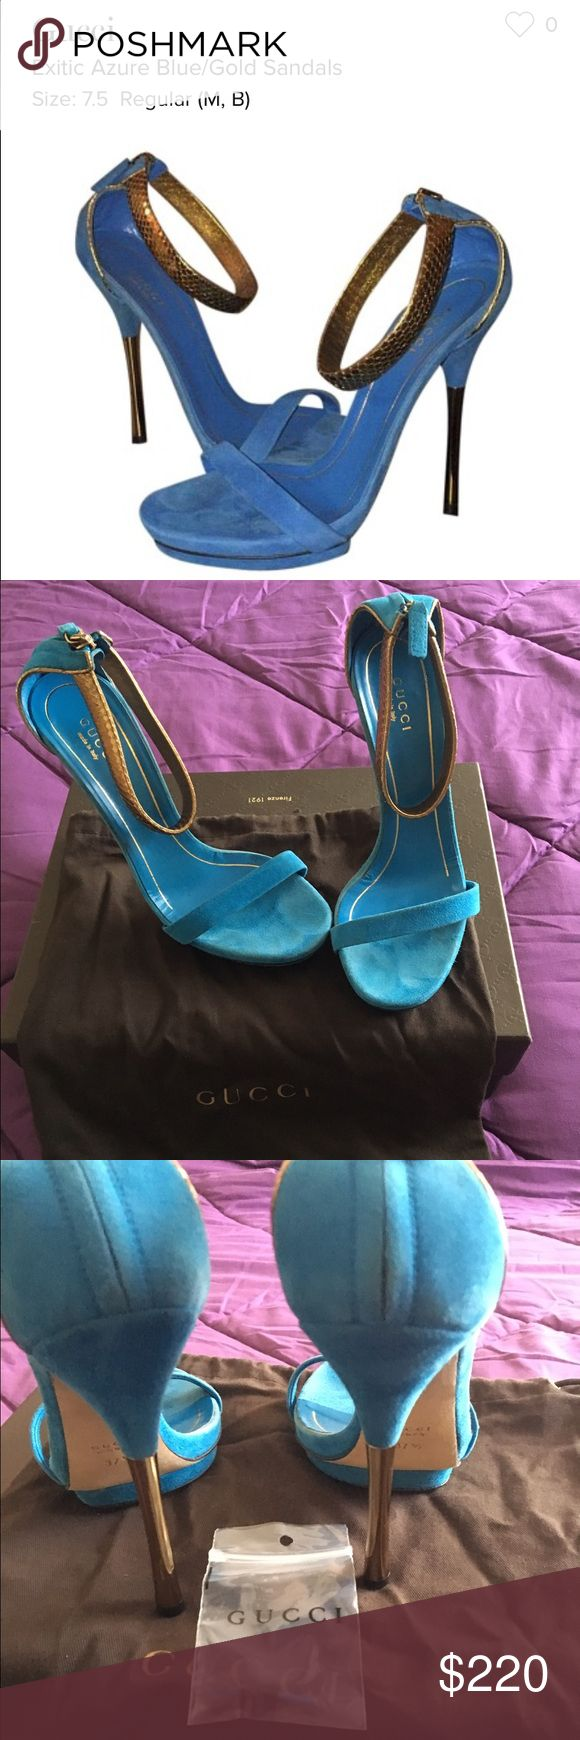 Gucci Blue and Gold Sandals This sexy sandal been worn but still in great condition.  Comes with box, dust bag. And extra shoe tacs.  Width:Regular (M, B) Heel Height:Ultra High 4 + Heel Style:Stiletto Brand:Gucci Color:Blue/Gold Style/Collection:Exitic azure Gucci Shoes Sandals